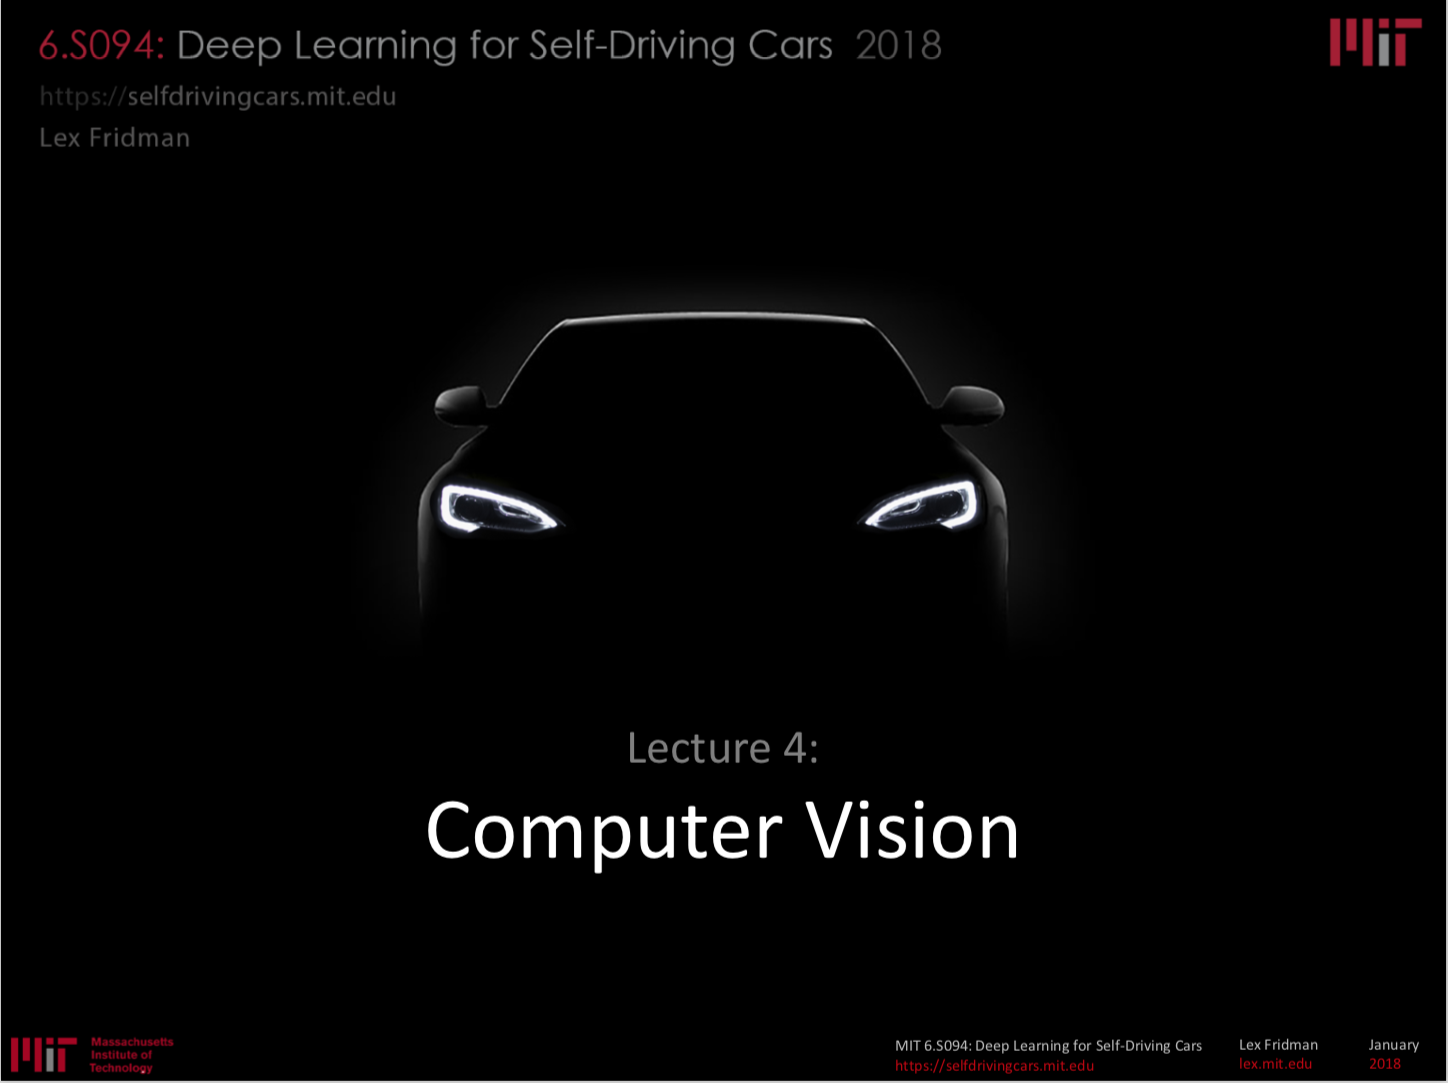 /mit-6-s094-deep-learning-for-self-driving-cars-2018-lecture-4-notes-computer-vision-f591f14b3b99 feature image